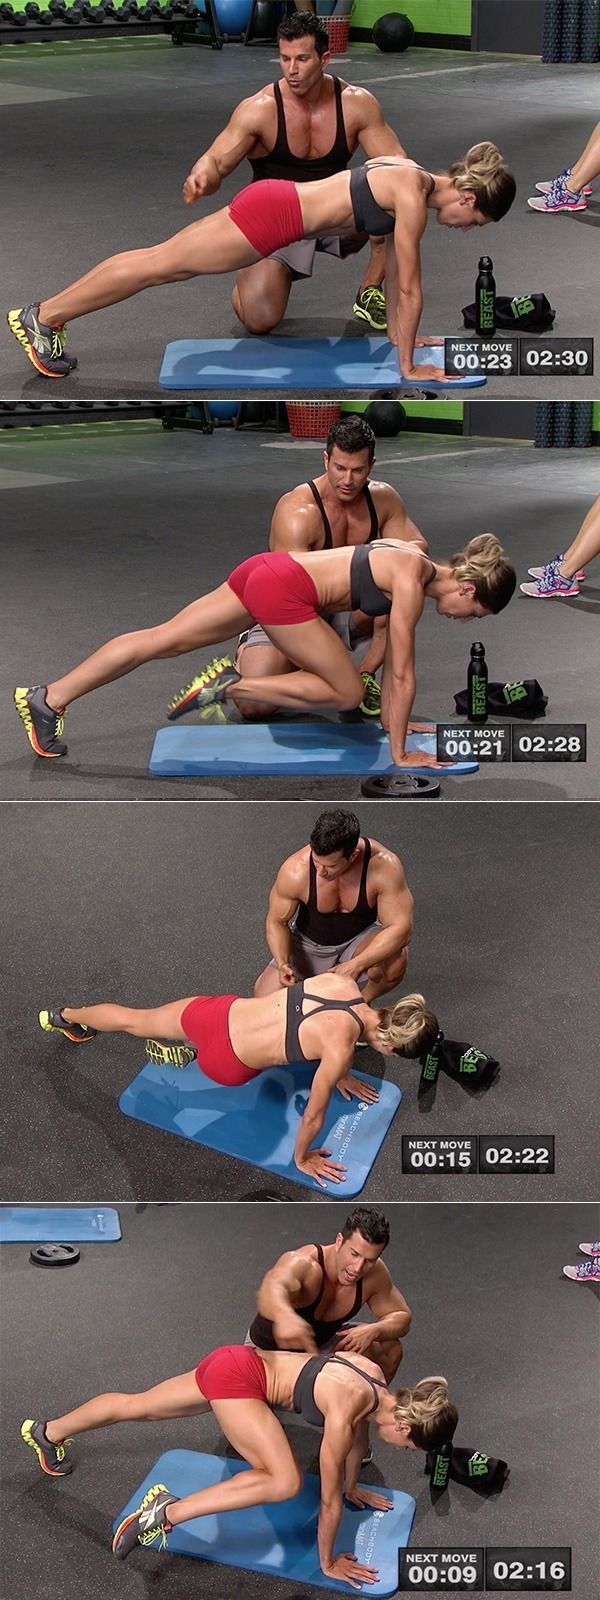 Check out this blog for the 10 best exercises to get shredded abs! how to strengthen your core // how to lose weight fast // fitness tips // best abs exercises men and woman // mountain climber // twist spiderman // masters hammer and chisel // Sagi Kalev // Beachbody // Beachbody Blog